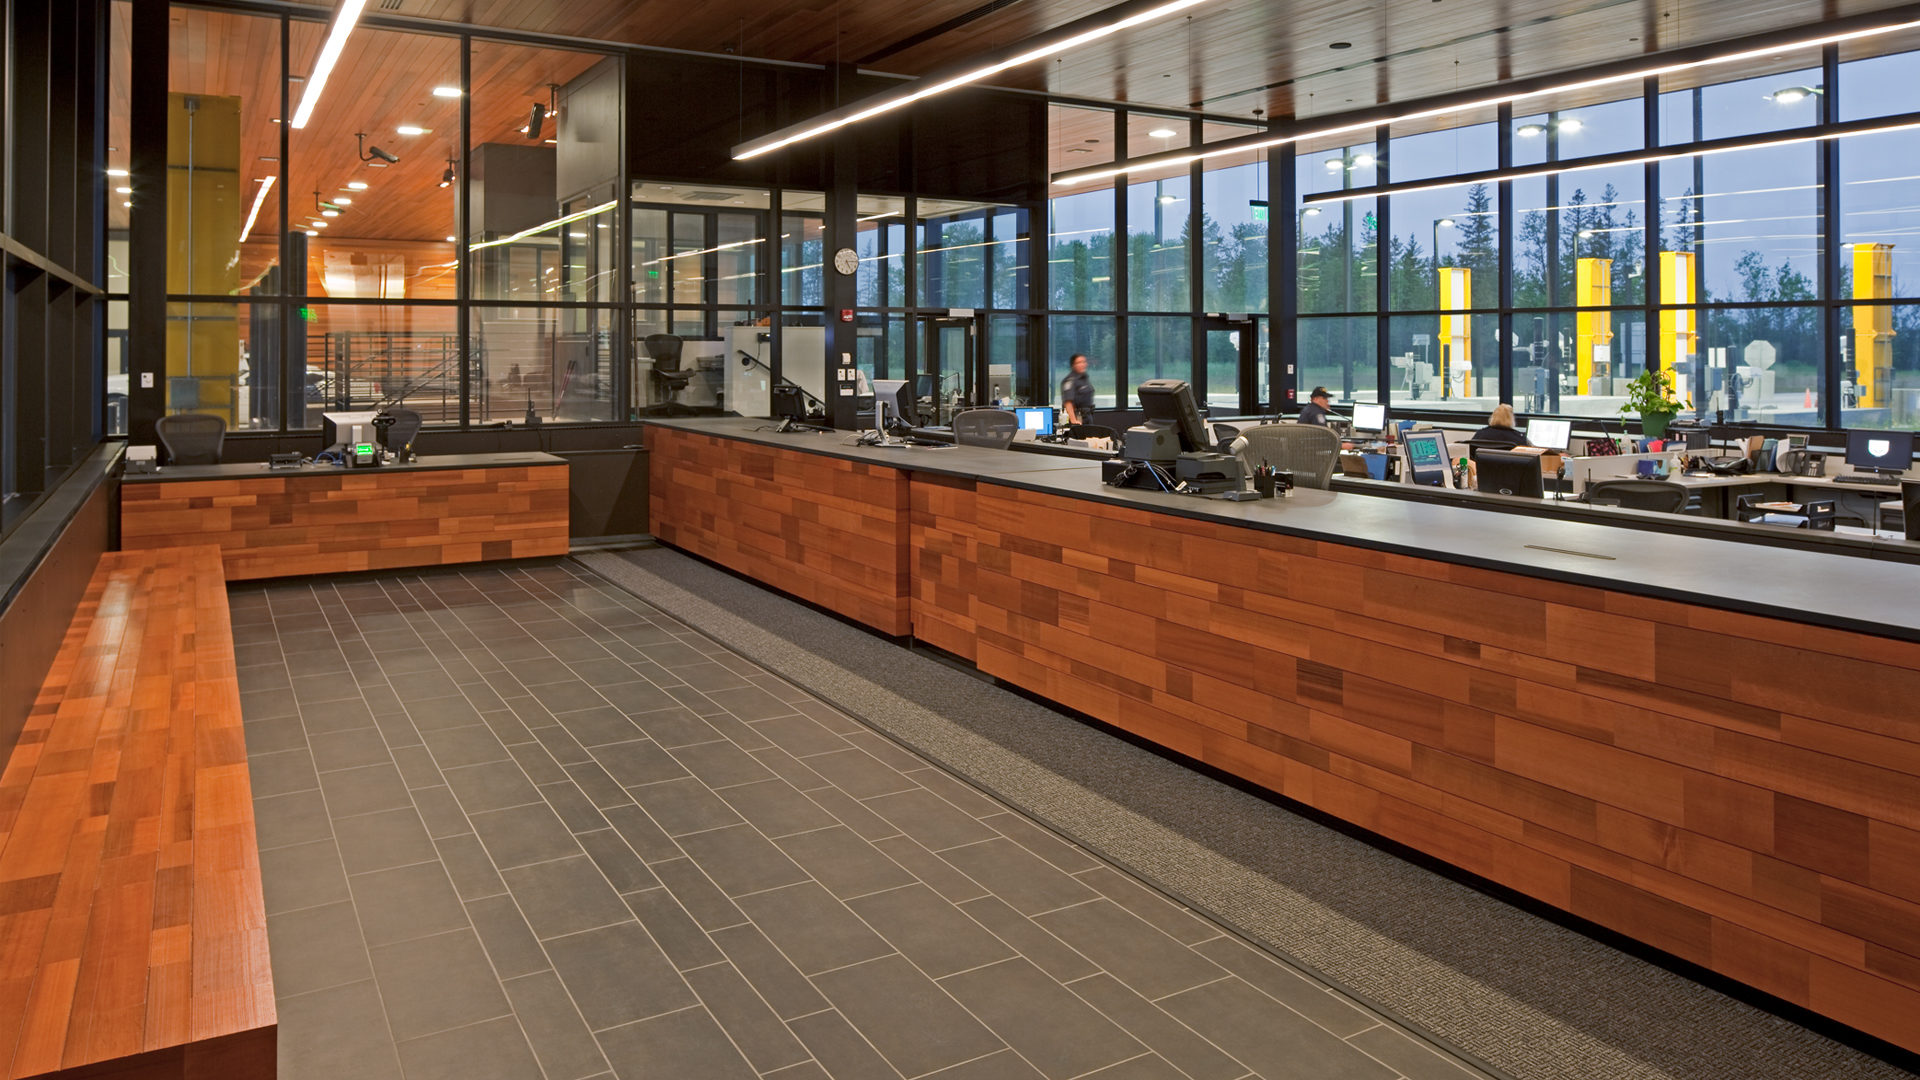 US Land Port of Entry Government Interior Reception Desk